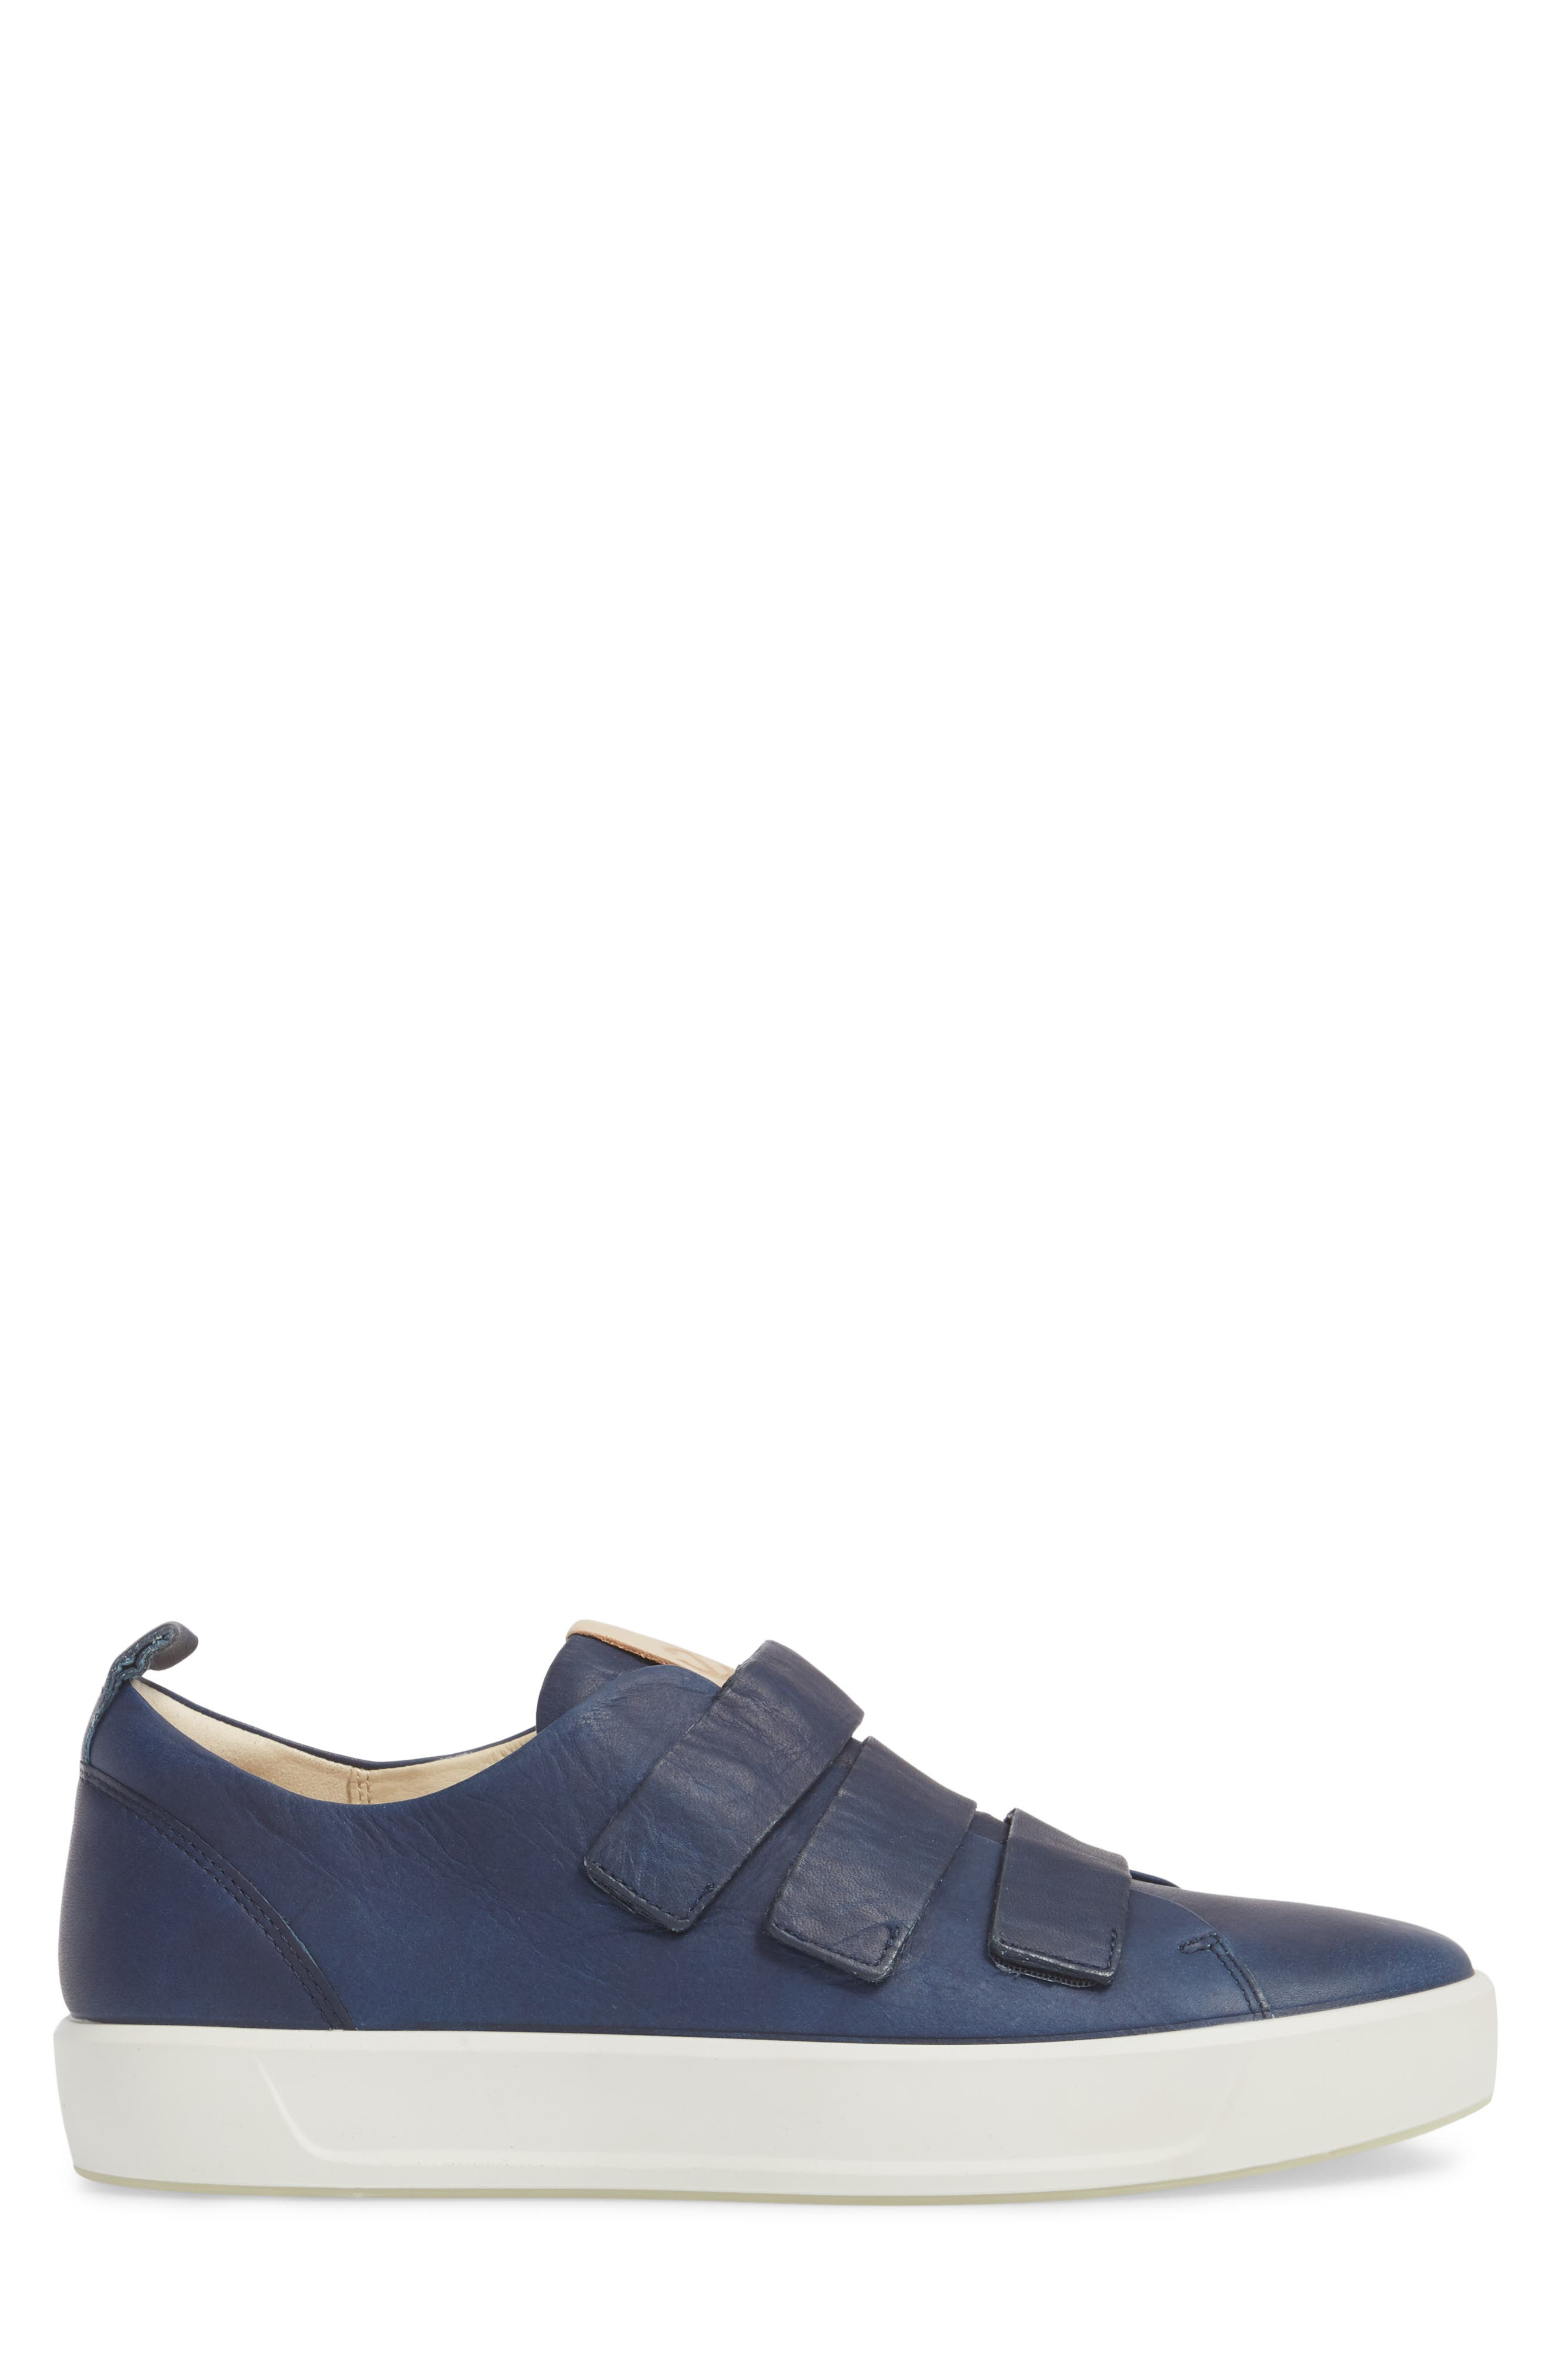 Soft 8 Strap Sneaker,                             Alternate thumbnail 3, color,                             Indigo 7 Leather